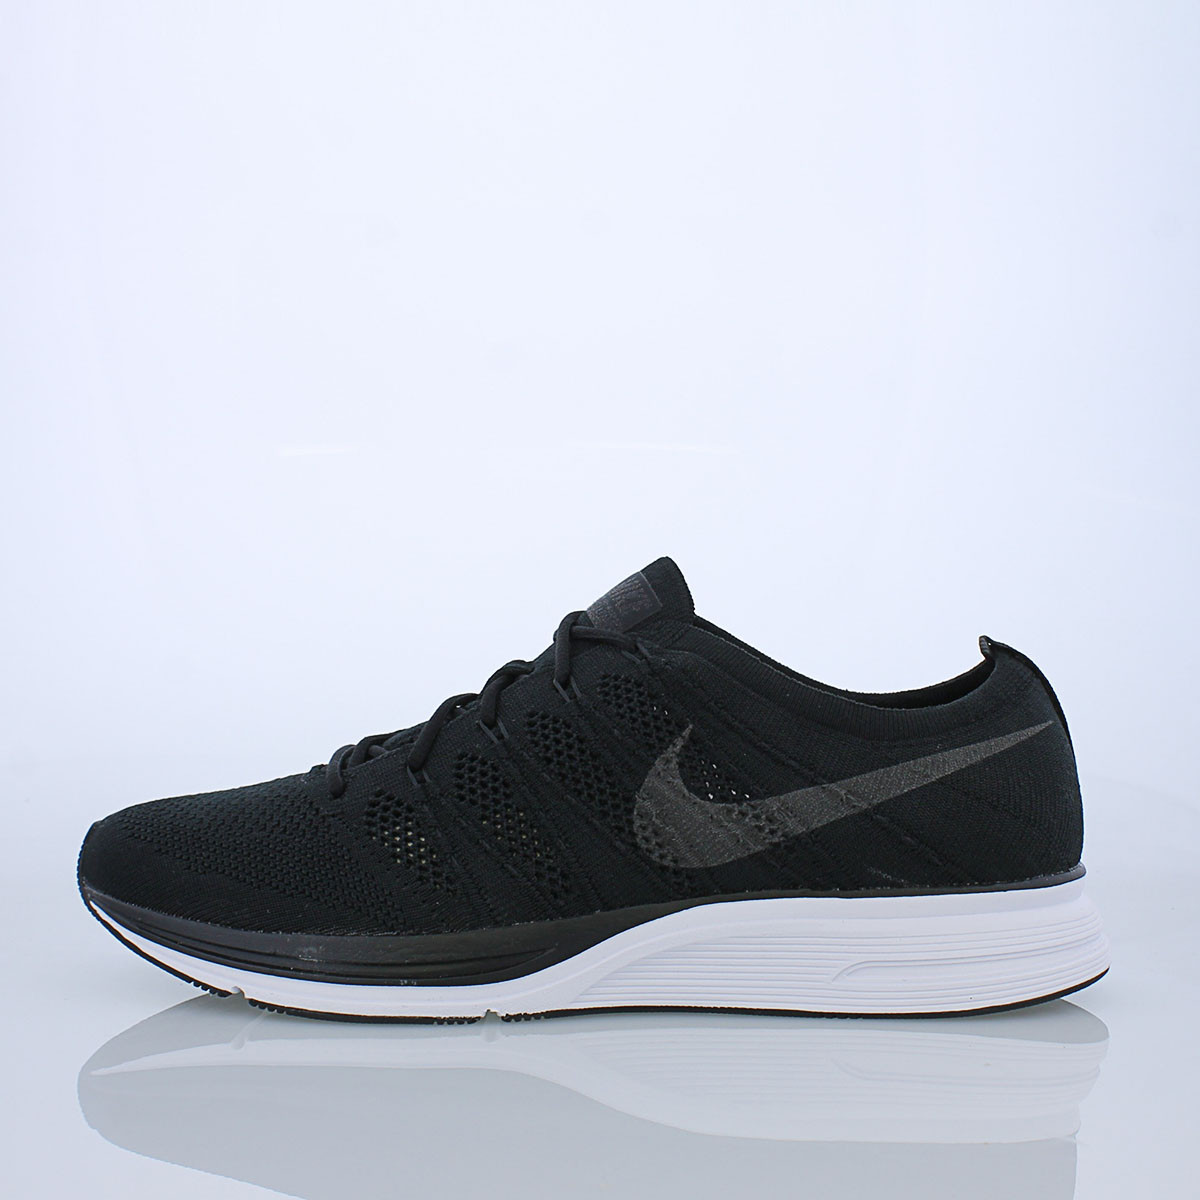 28205d5eb04 Nike Flyknit Trainer   Up to 60% off - Buy Nike Shoes at ...